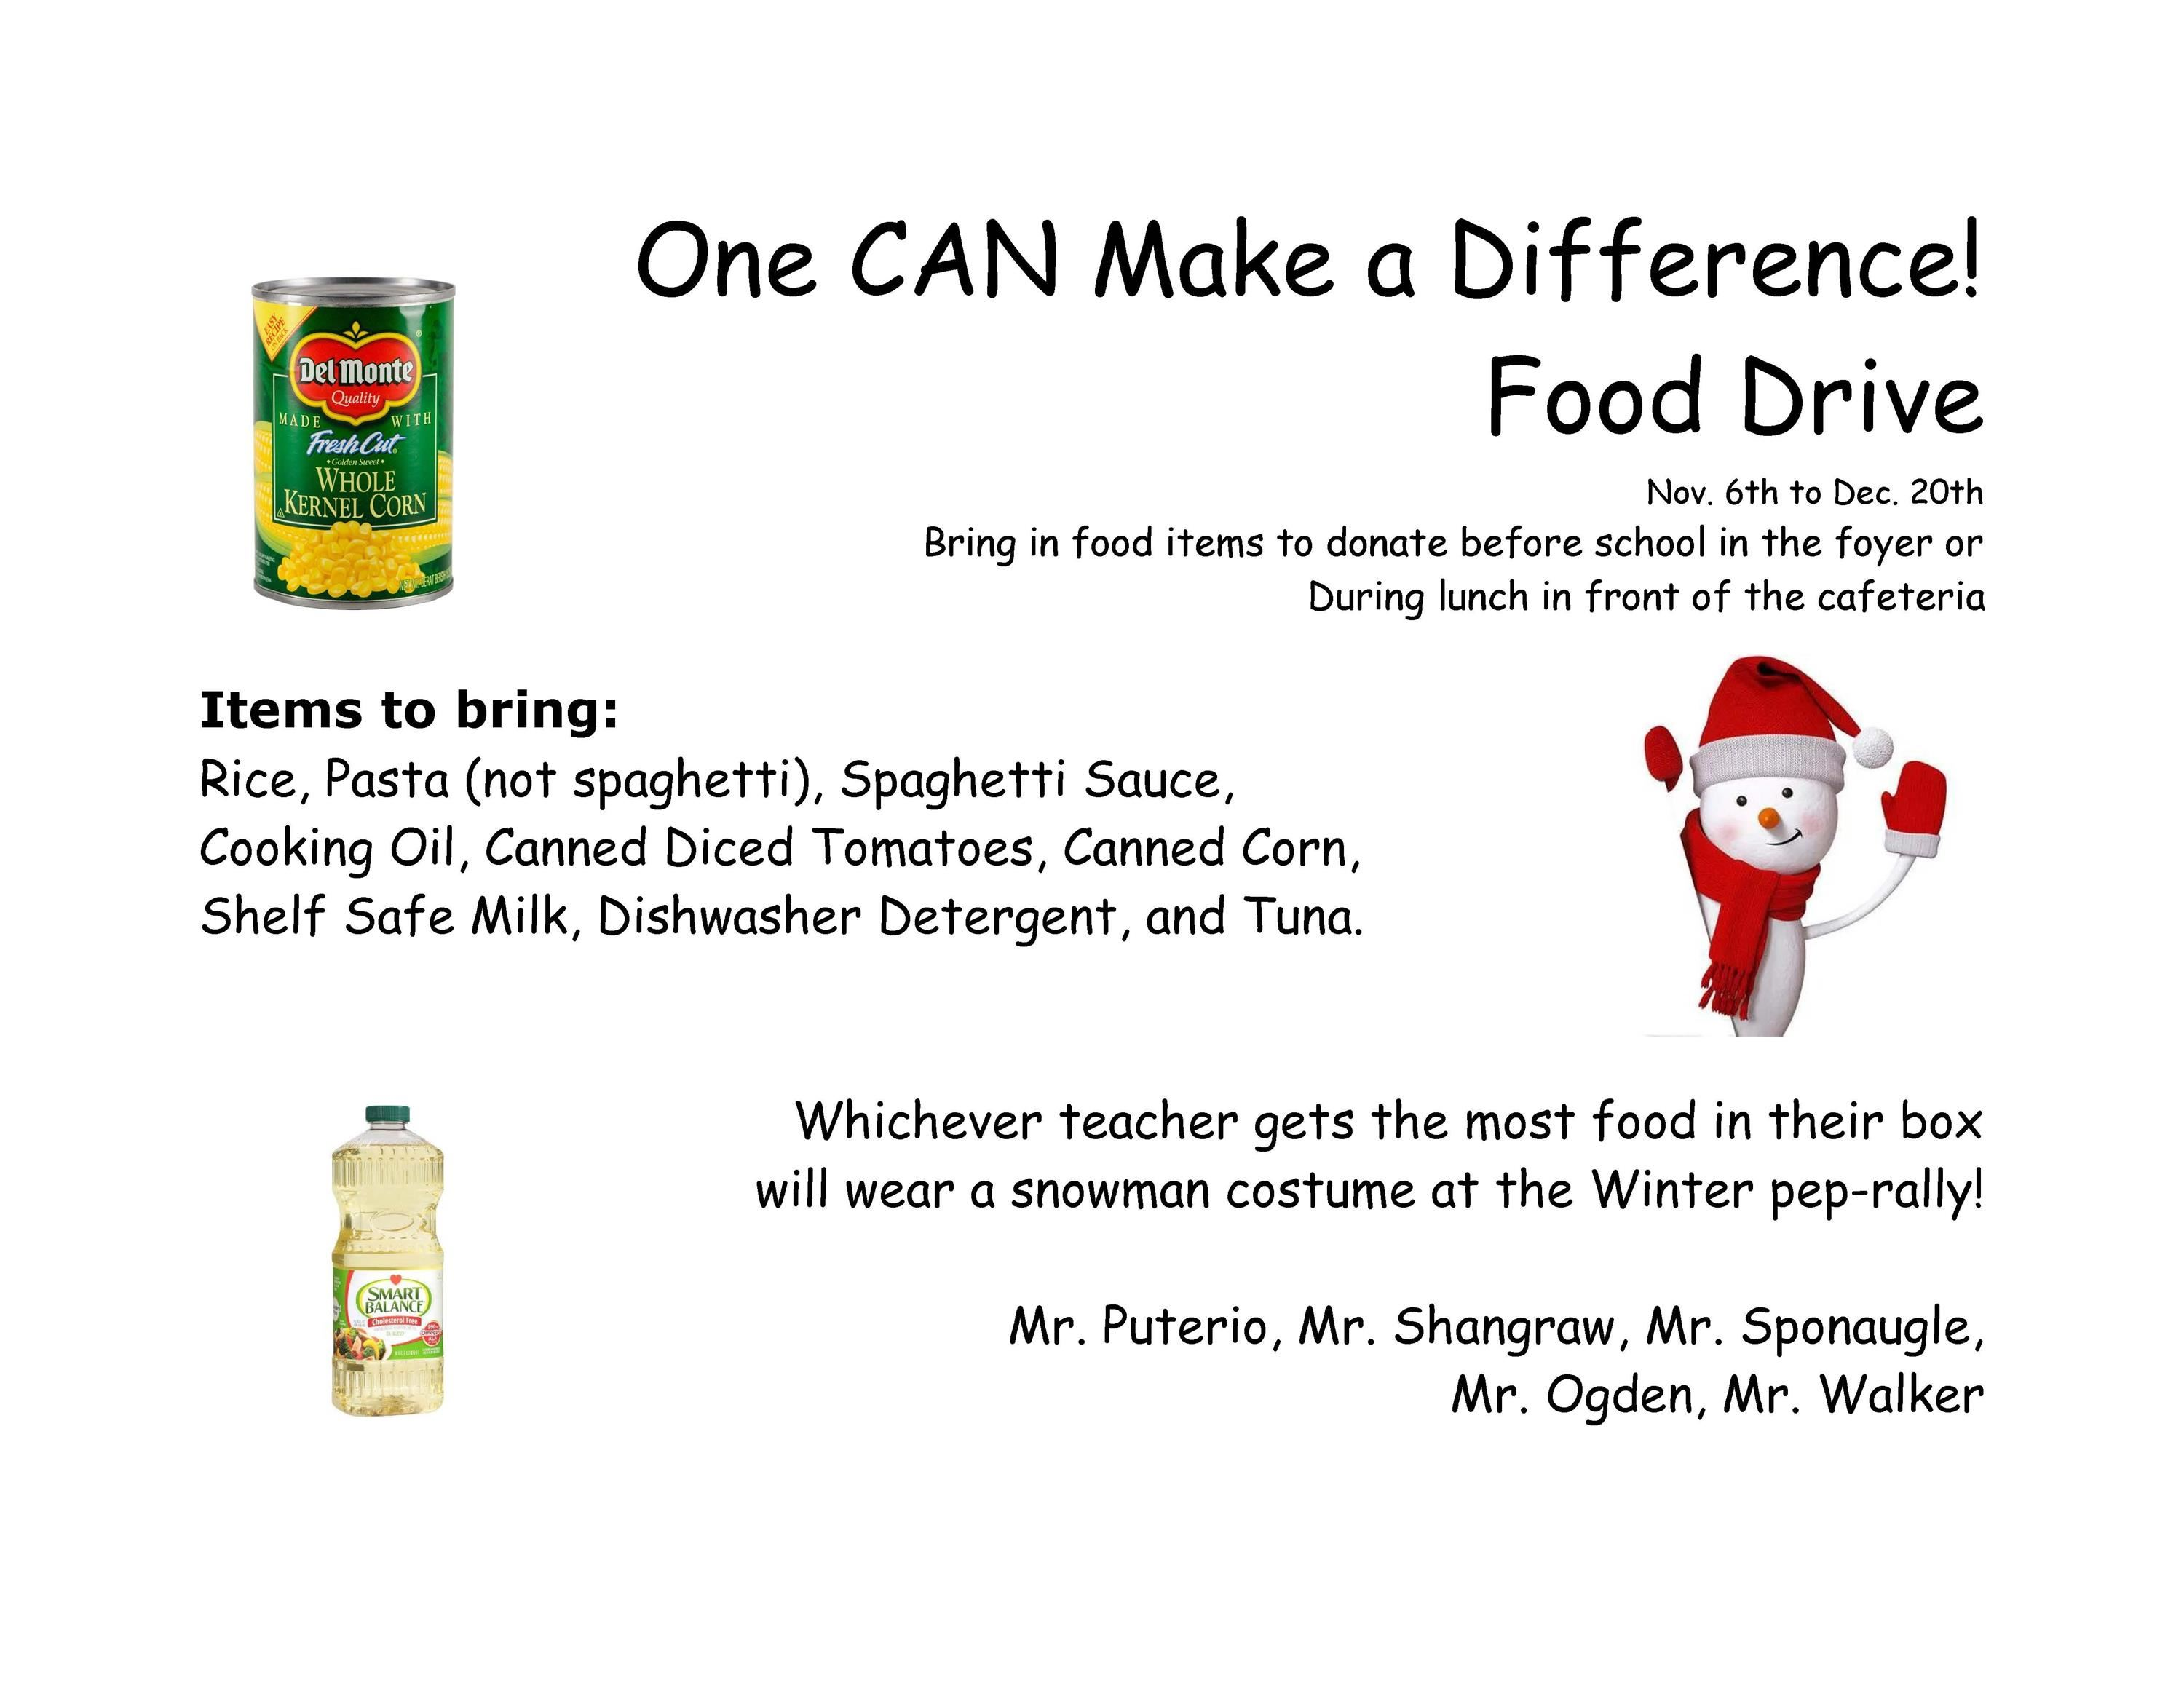 Food Drive: Nov. 6-Dec. 20